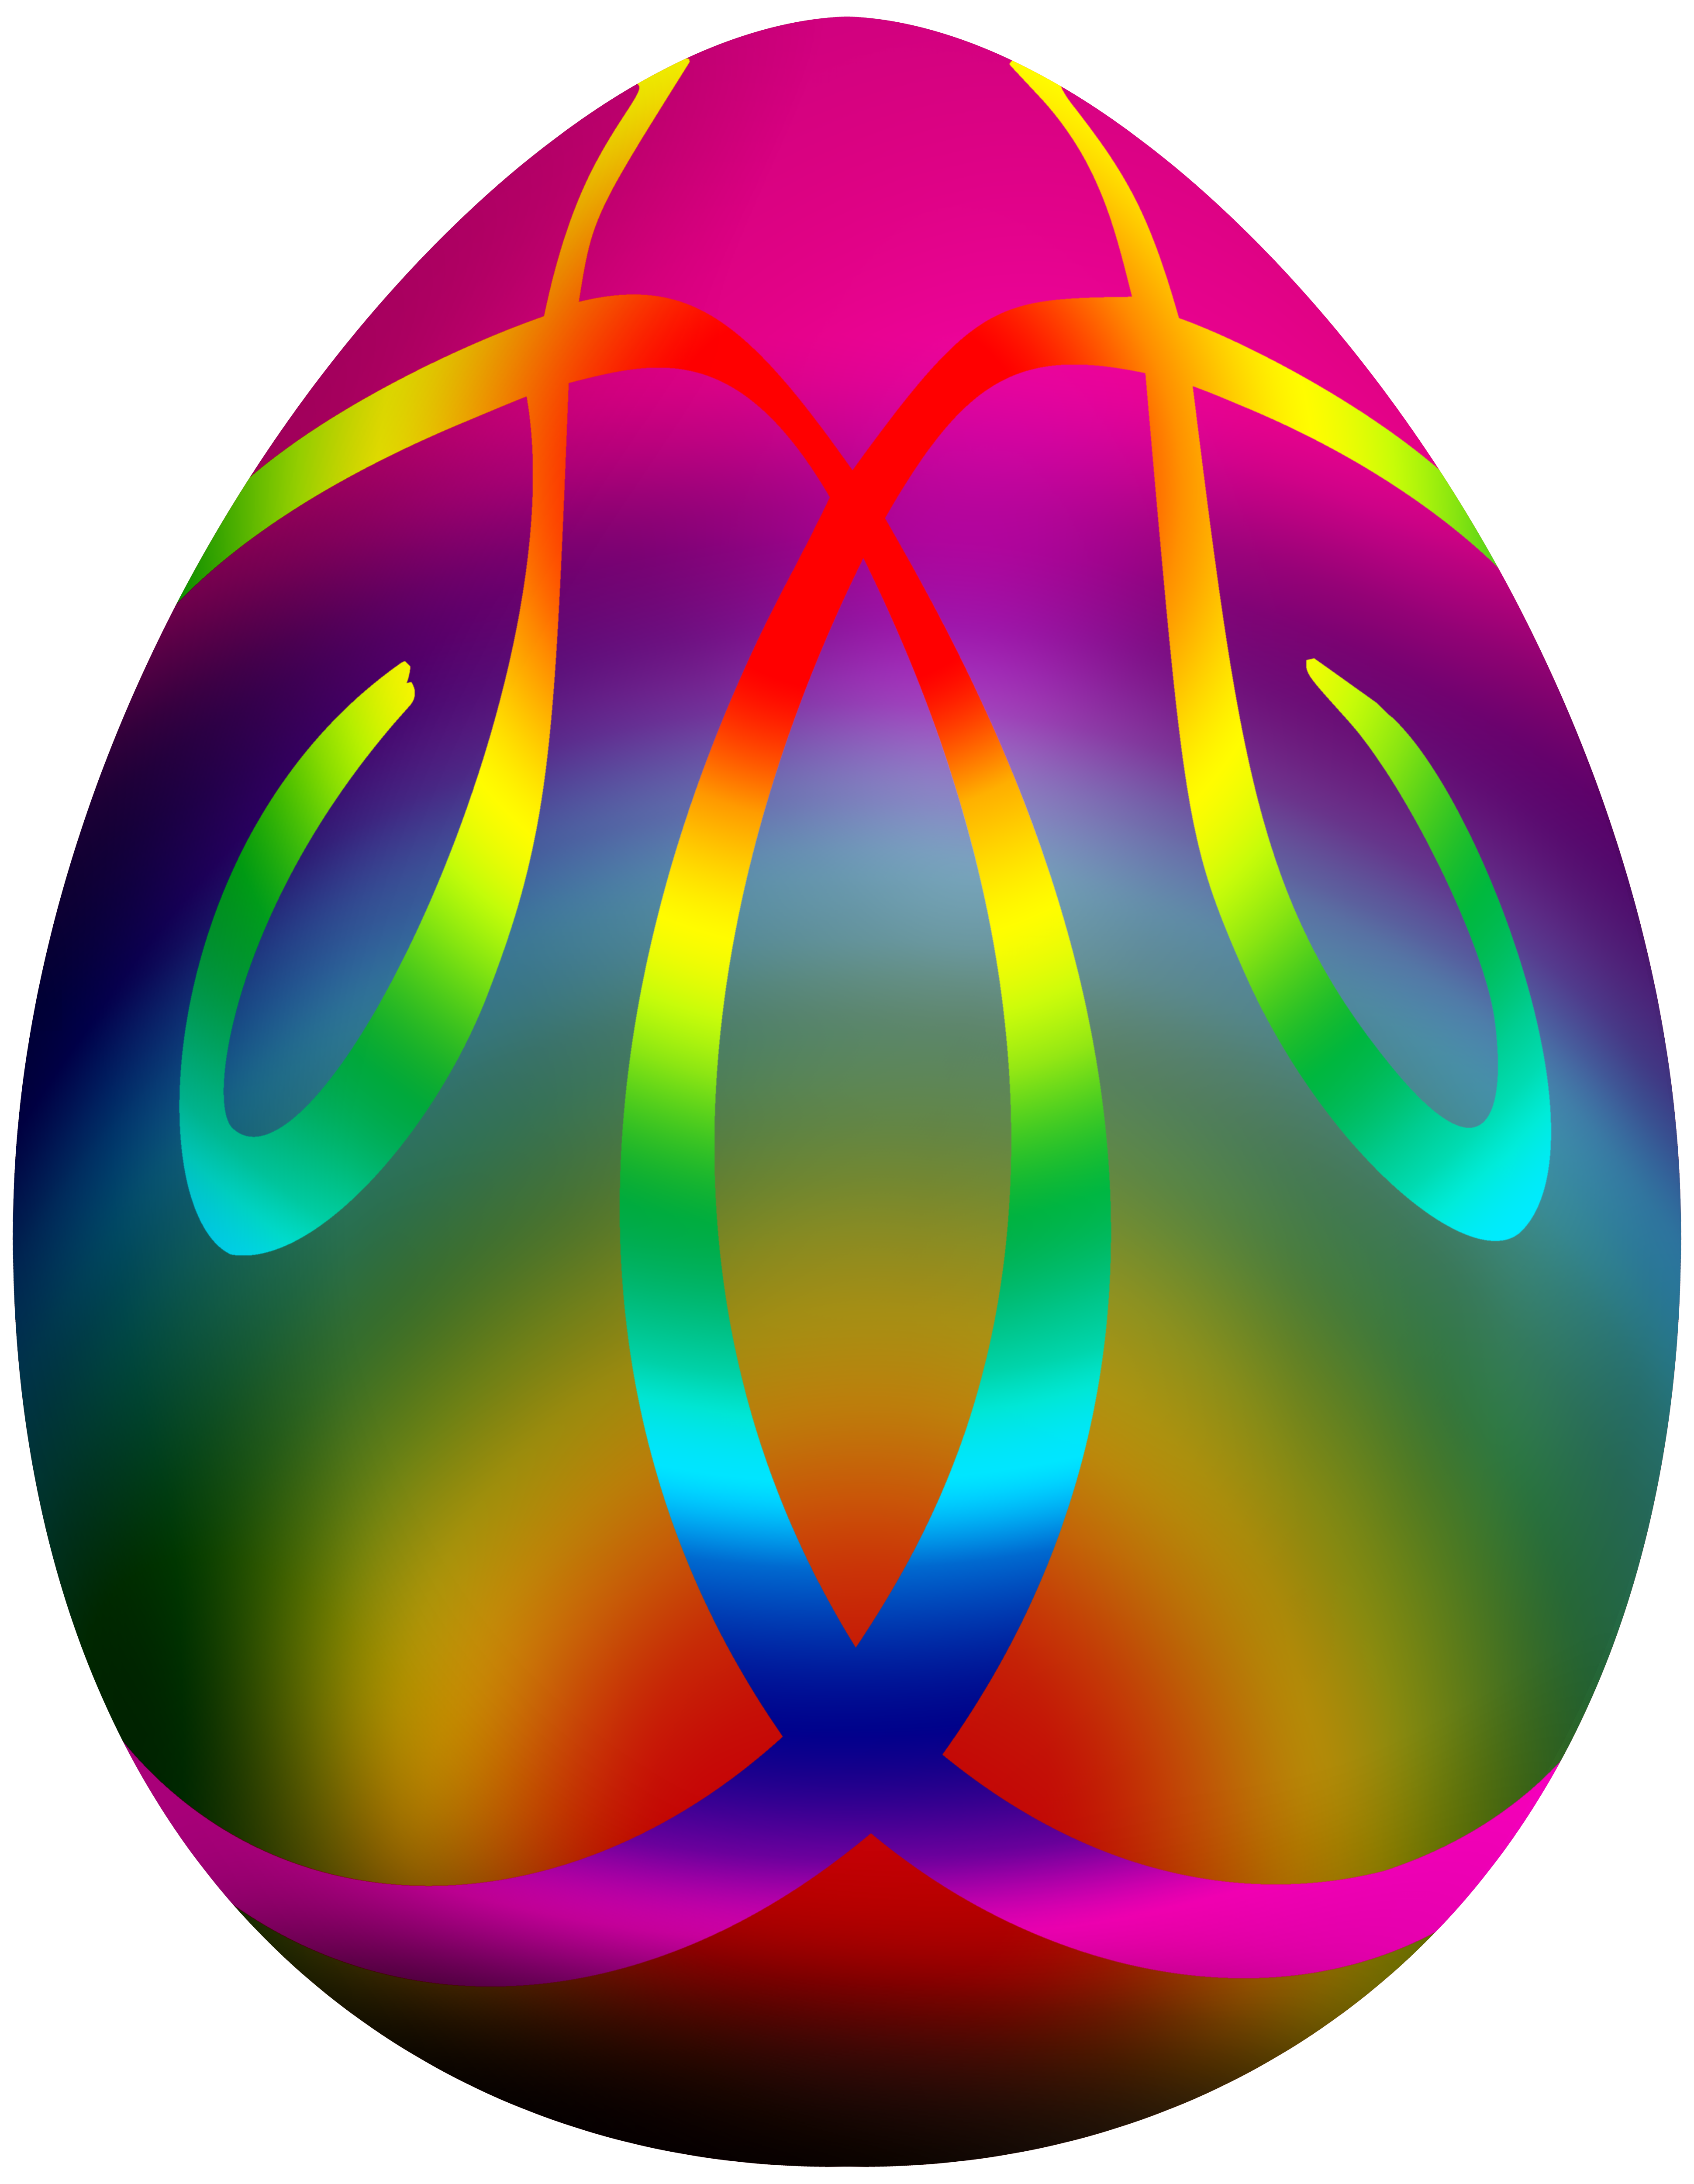 Easter egg clipart vector library download Colorful Easter Egg PNG Clip Art - Best WEB Clipart vector library download